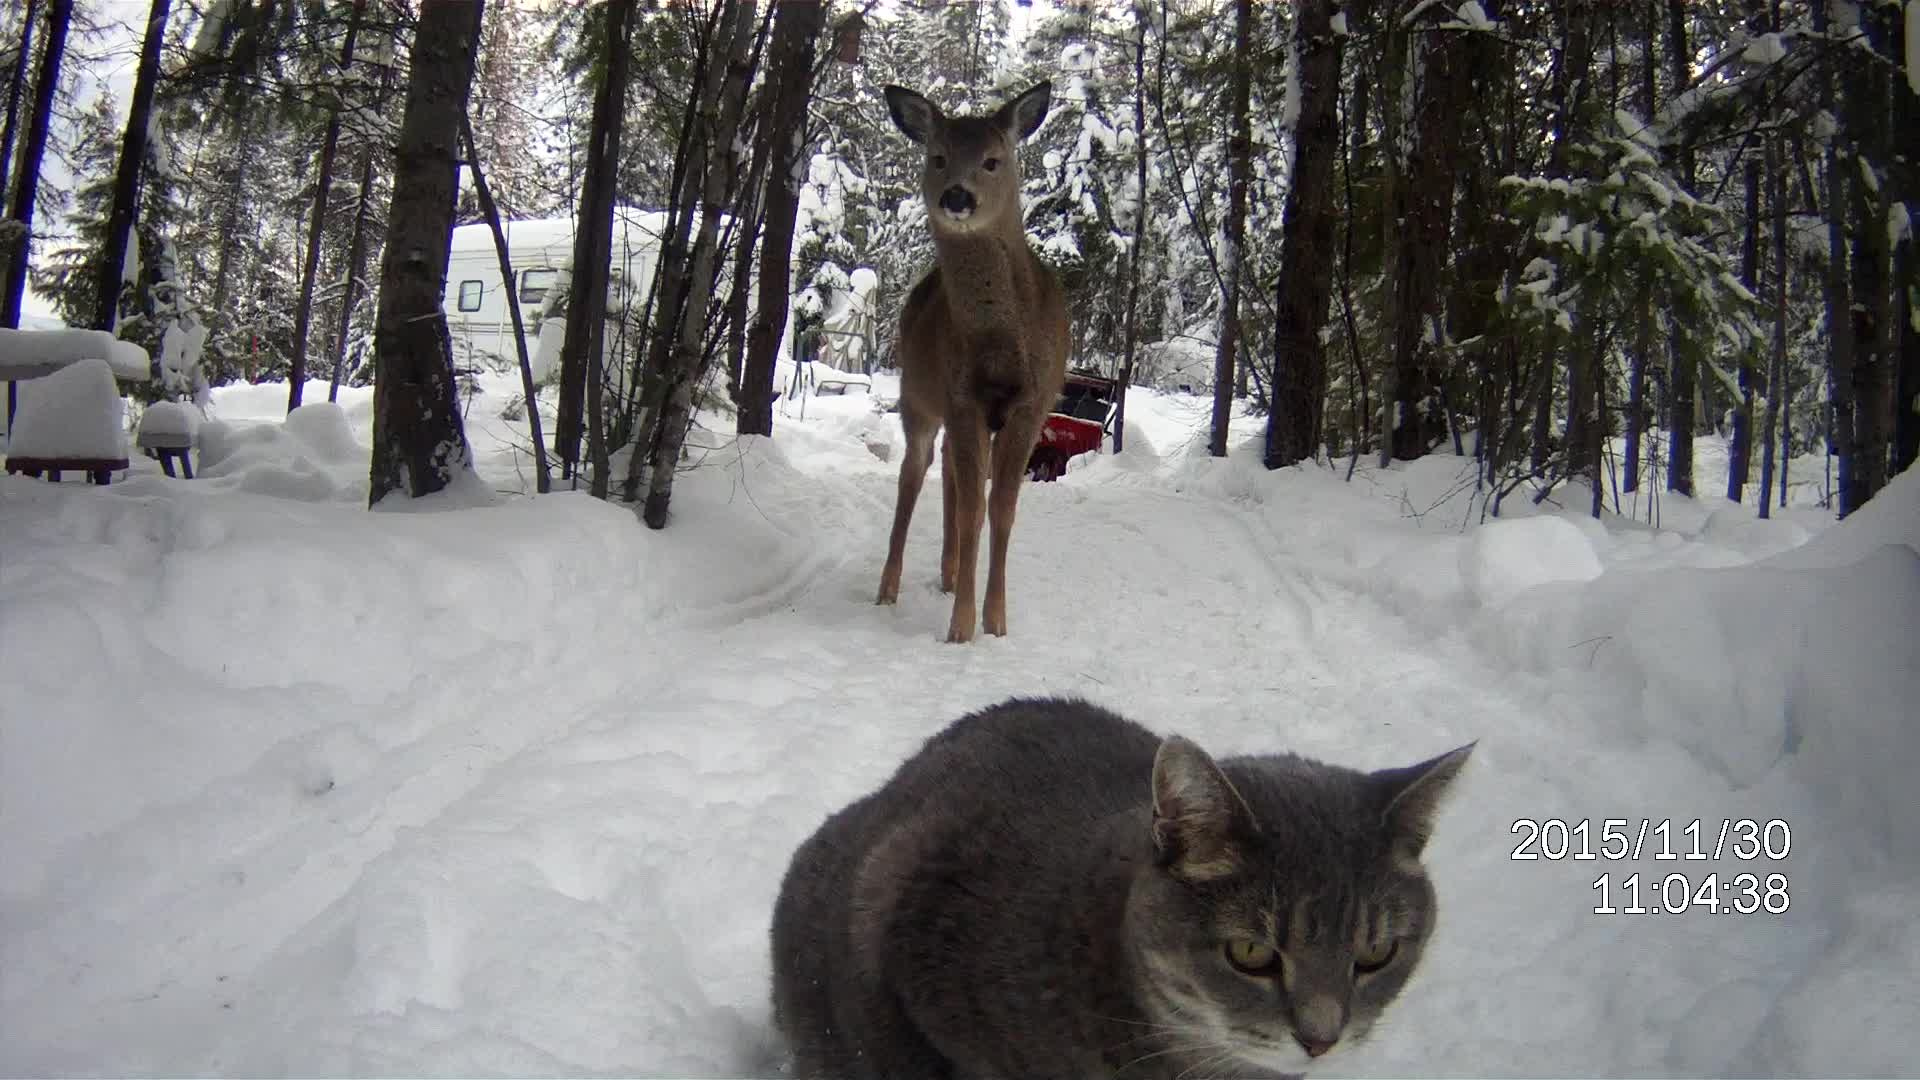 Suspicious Cat Hesitant to Meet Friendly Deer